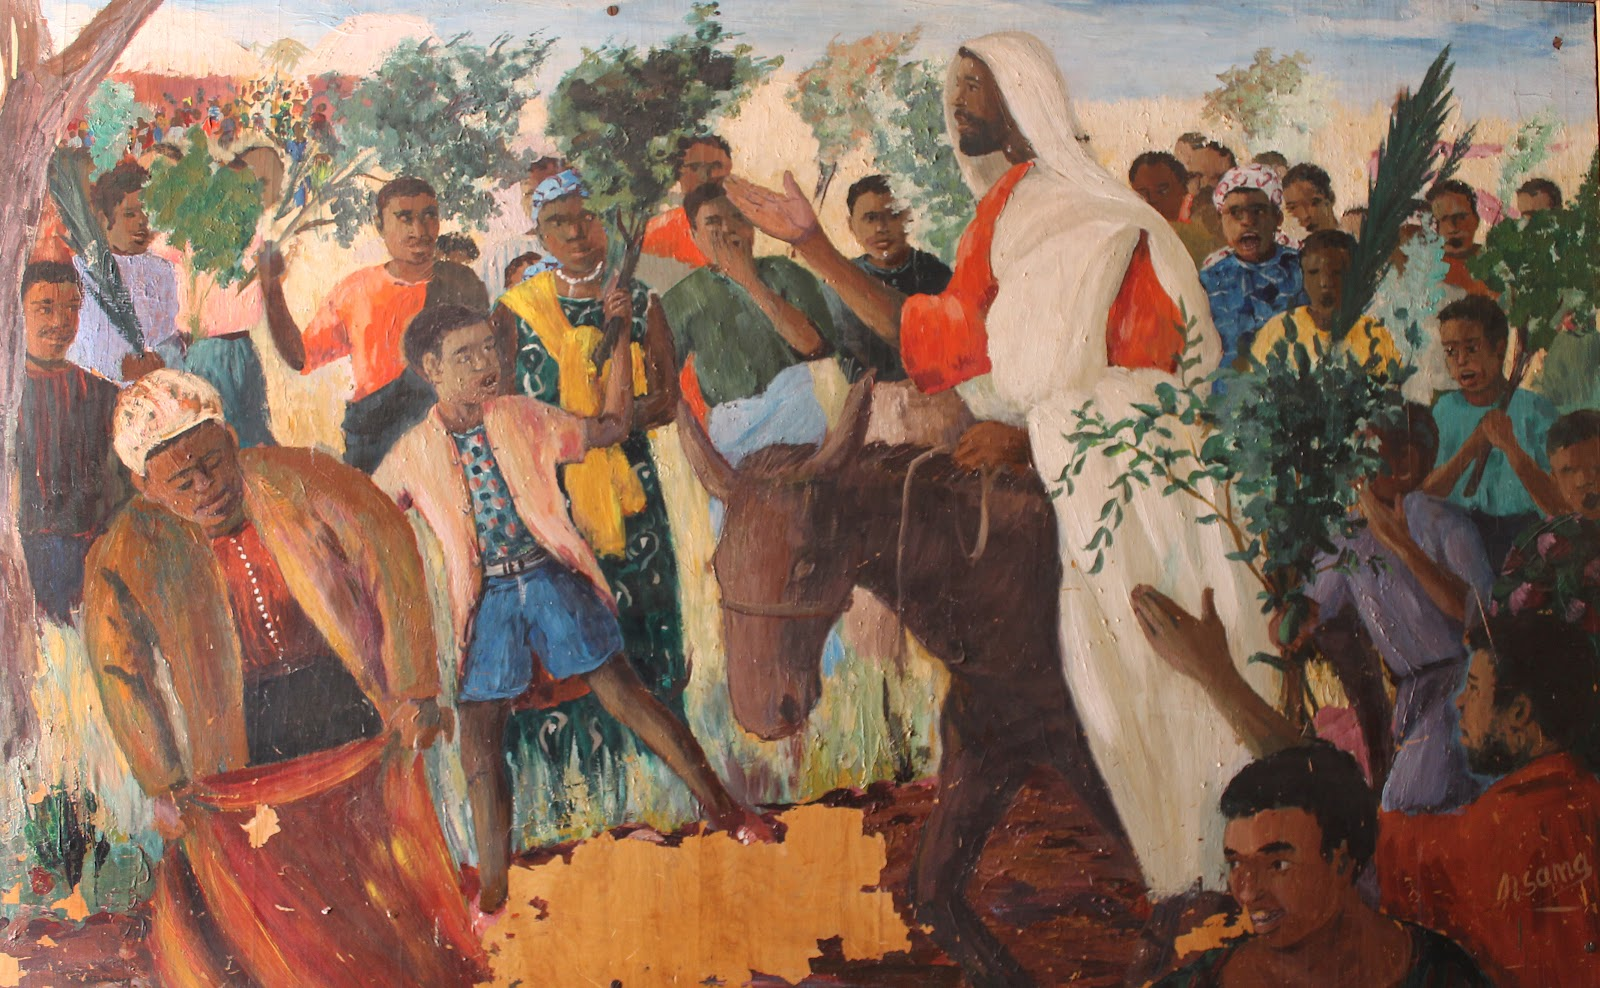 An African Jesus triumphal entry into Jerusalem riding on a donkey to the enthusiasm of the crowd